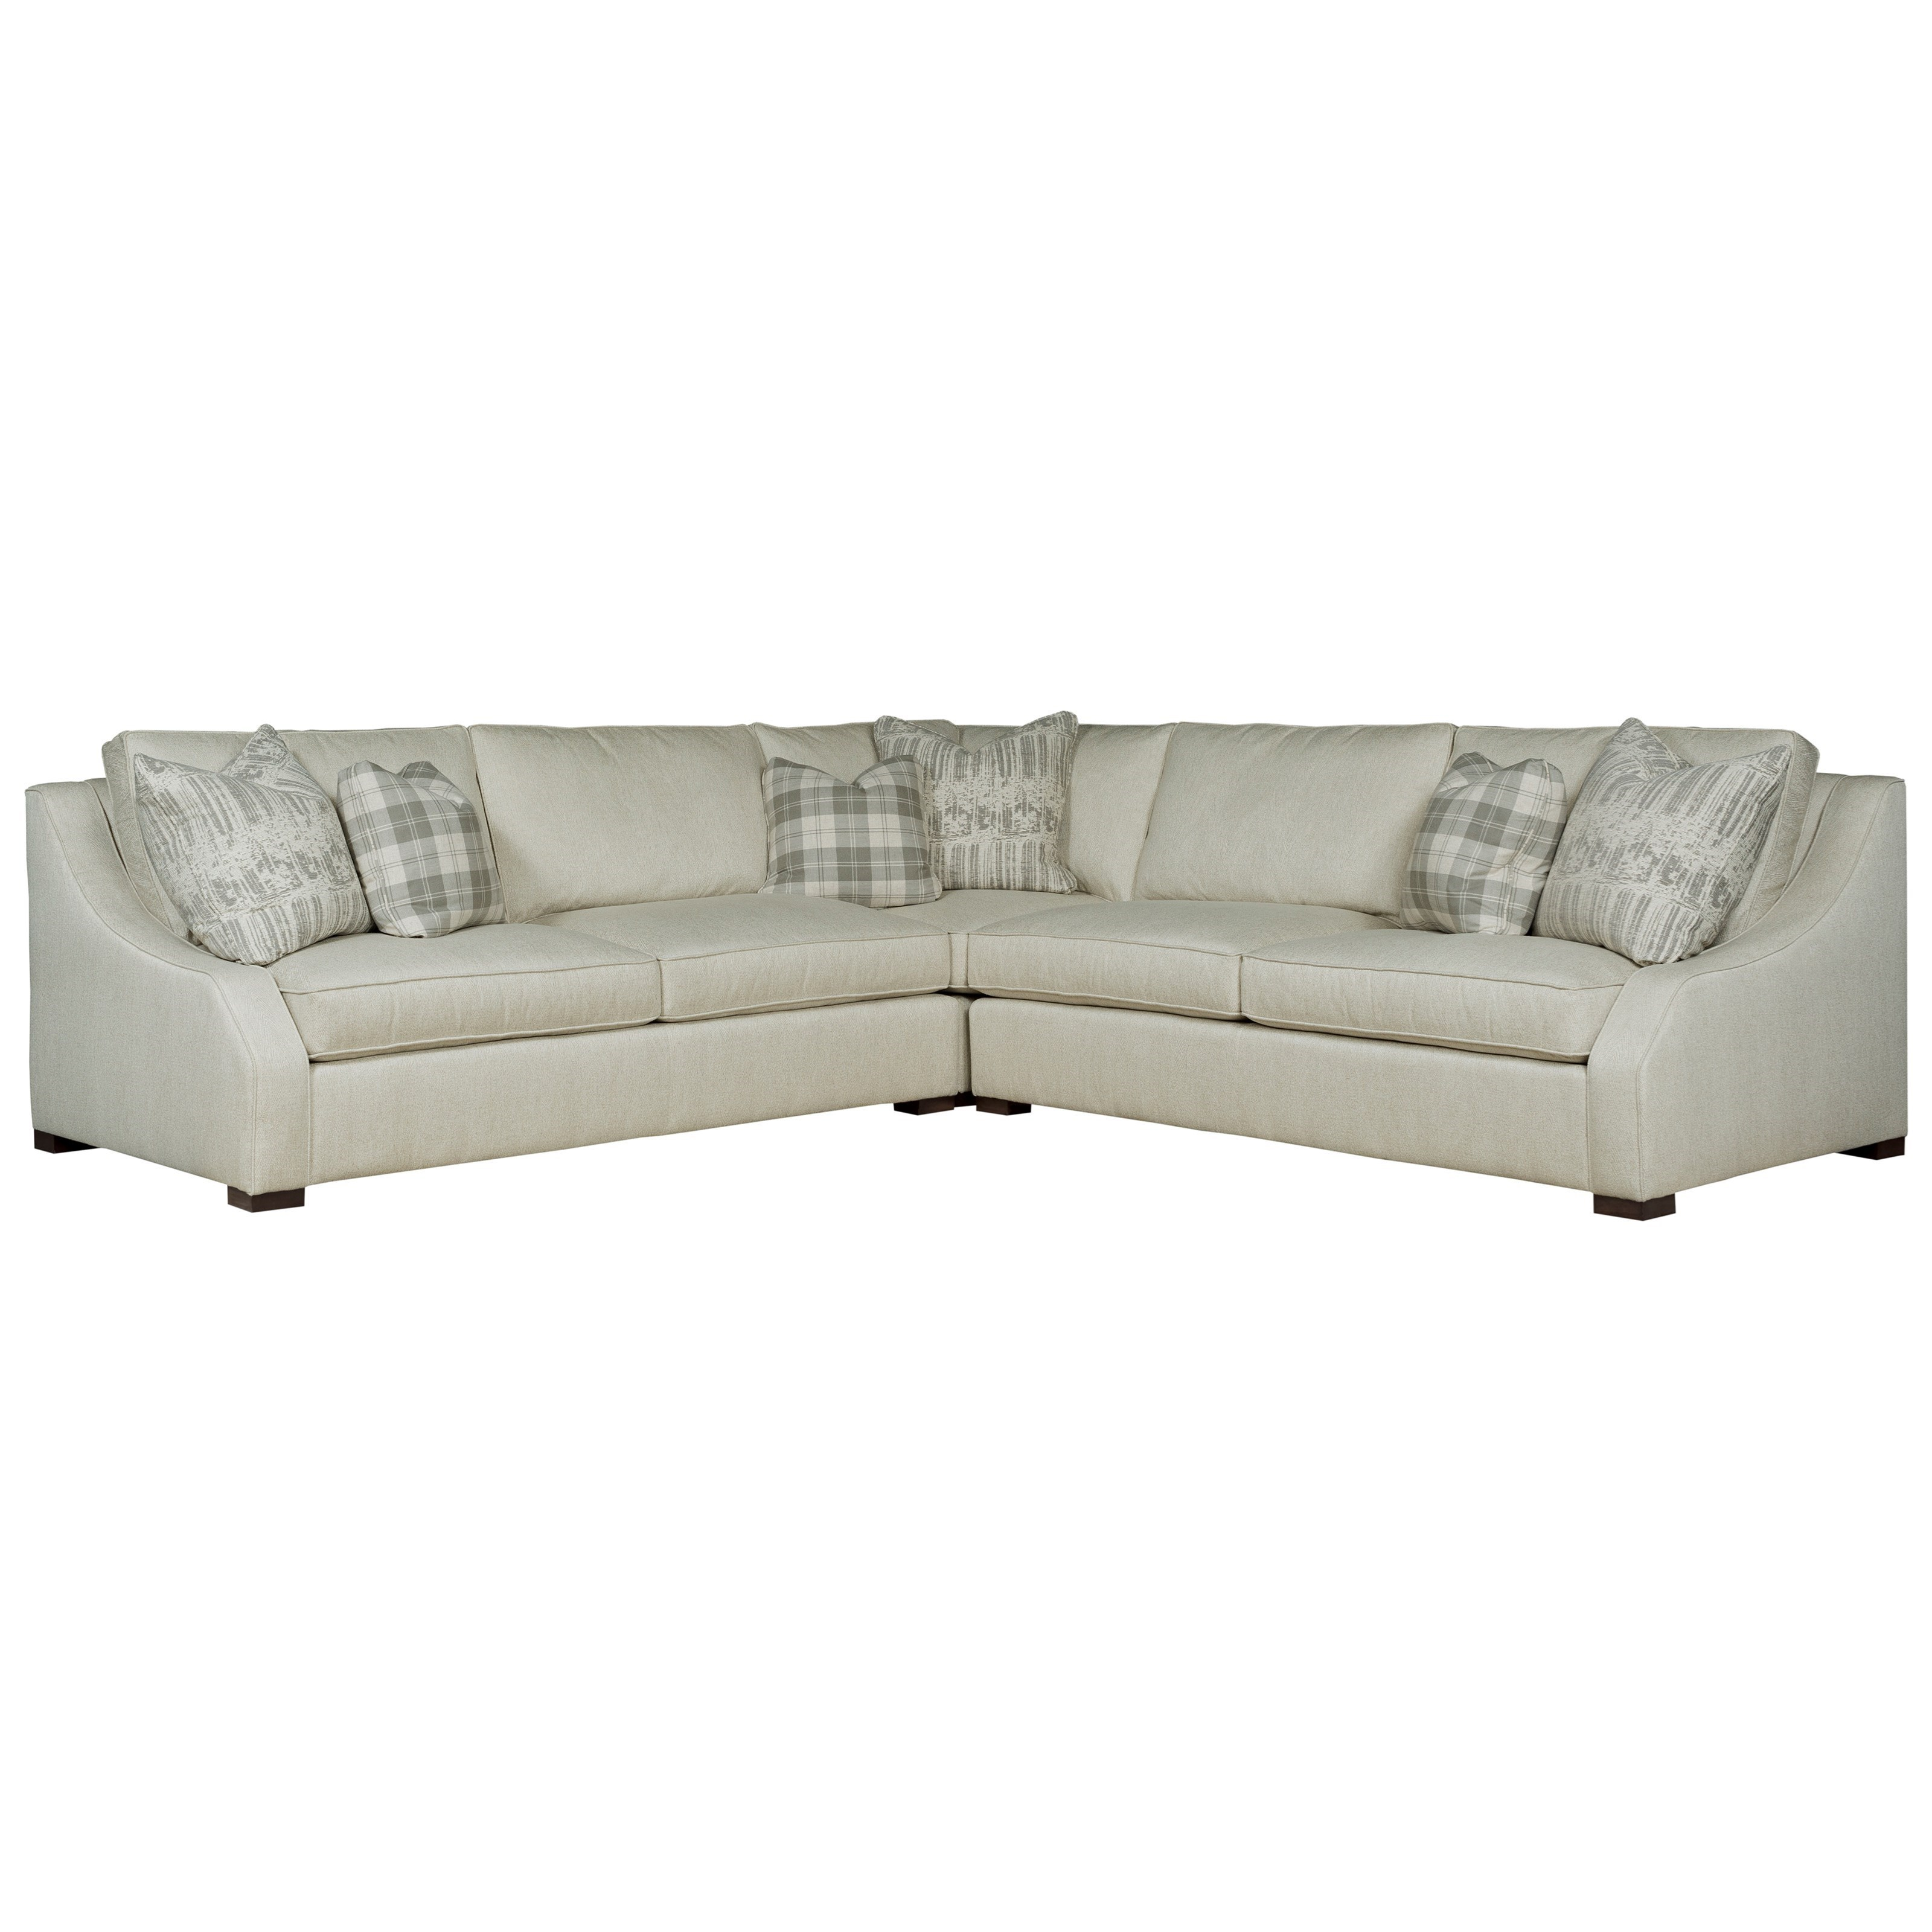 Monarch Sectional by Kincaid Furniture at Johnny Janosik